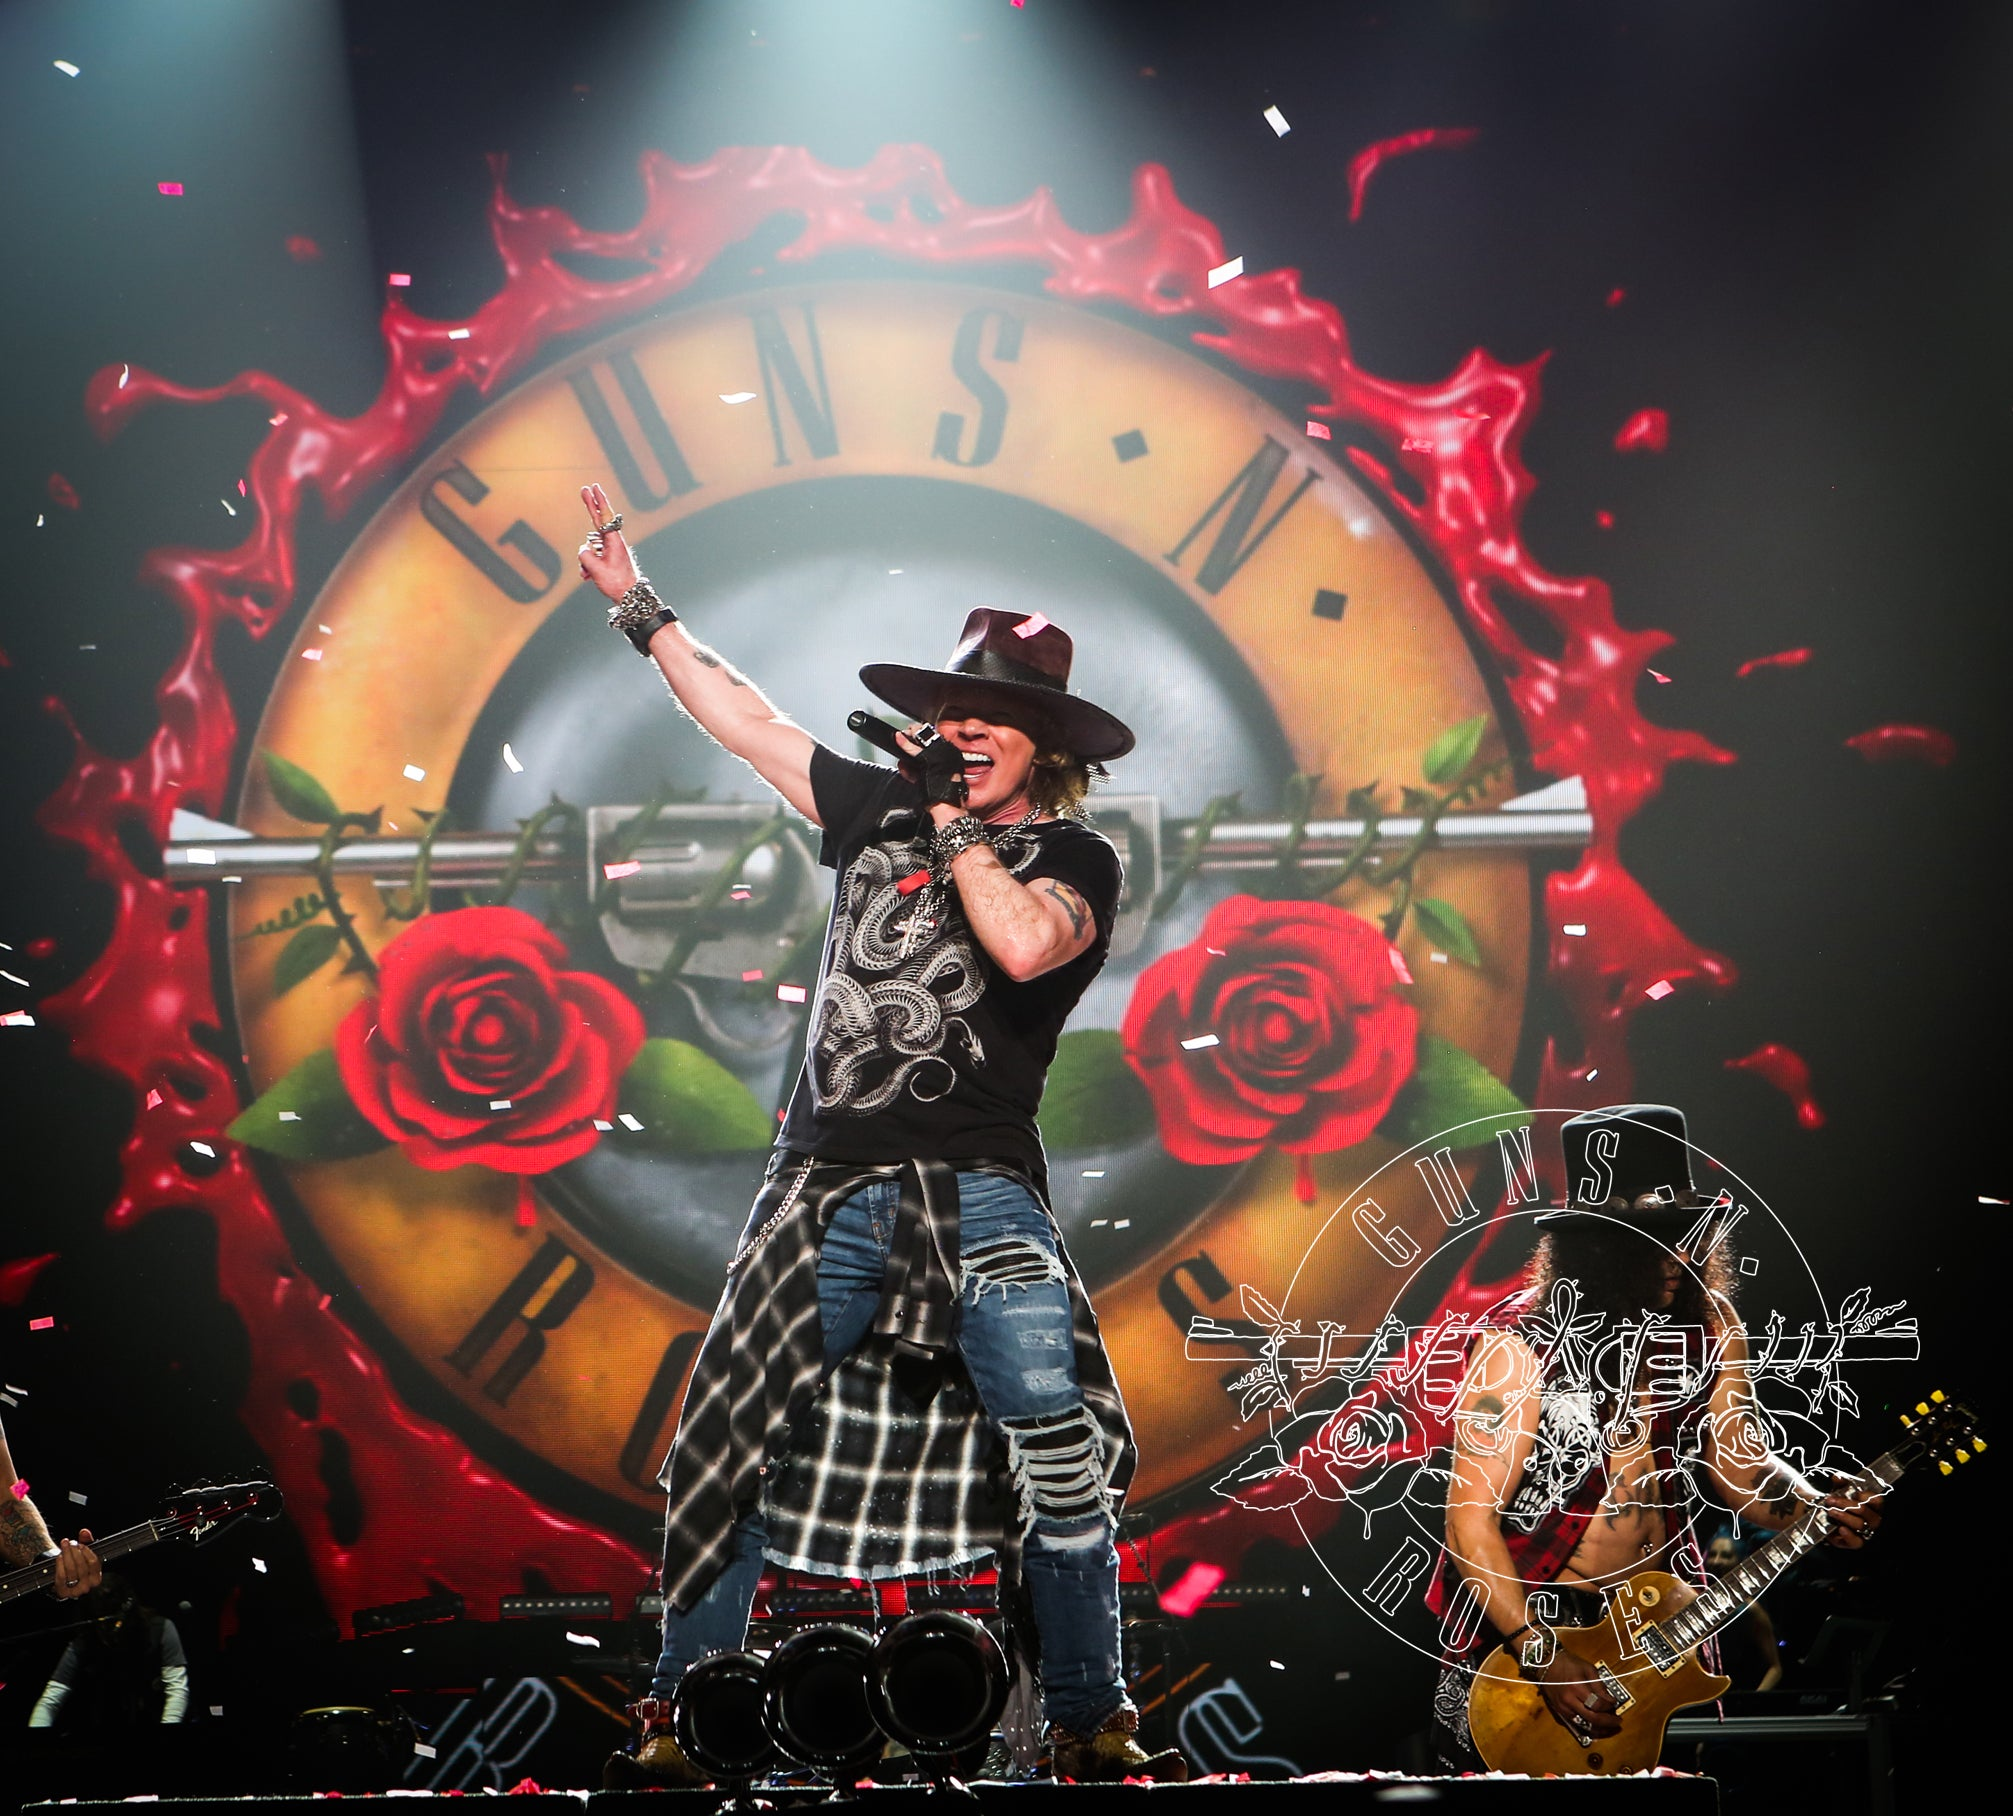 These Guns N' Roses Shows Look Phenomenal. No, Really - Look!